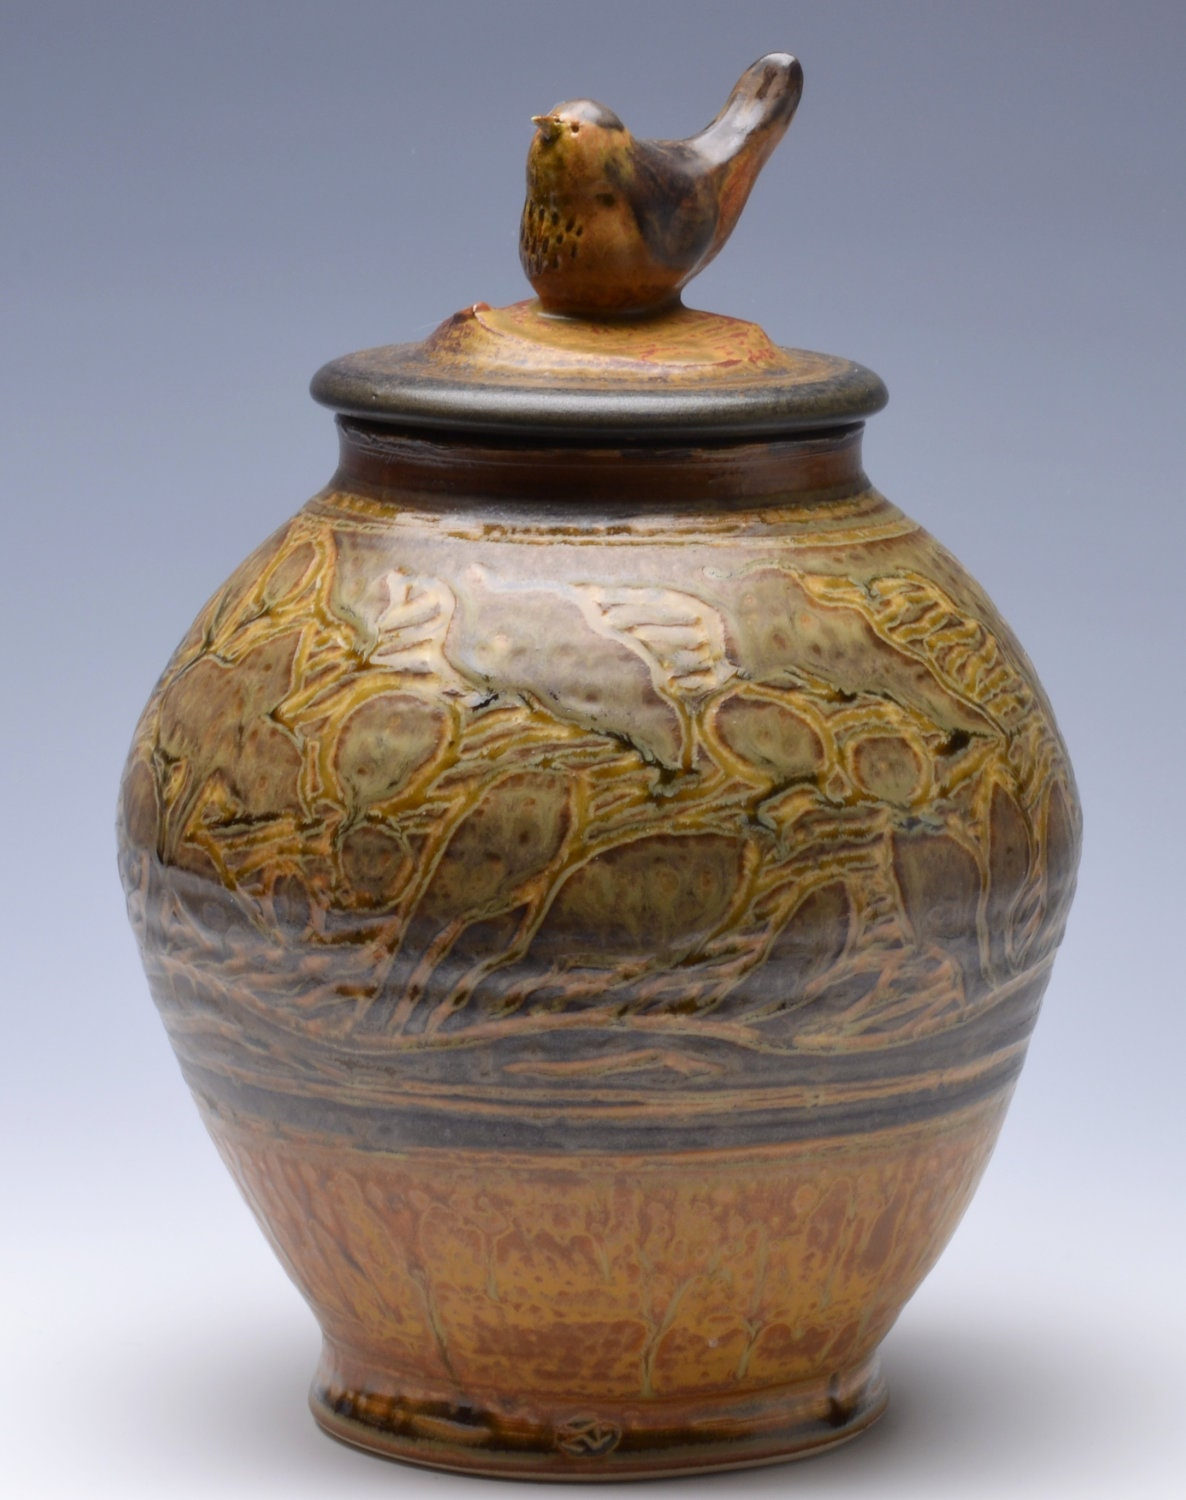 Memorial Cremation Urn Handmade Pottery with Sculpted Bird